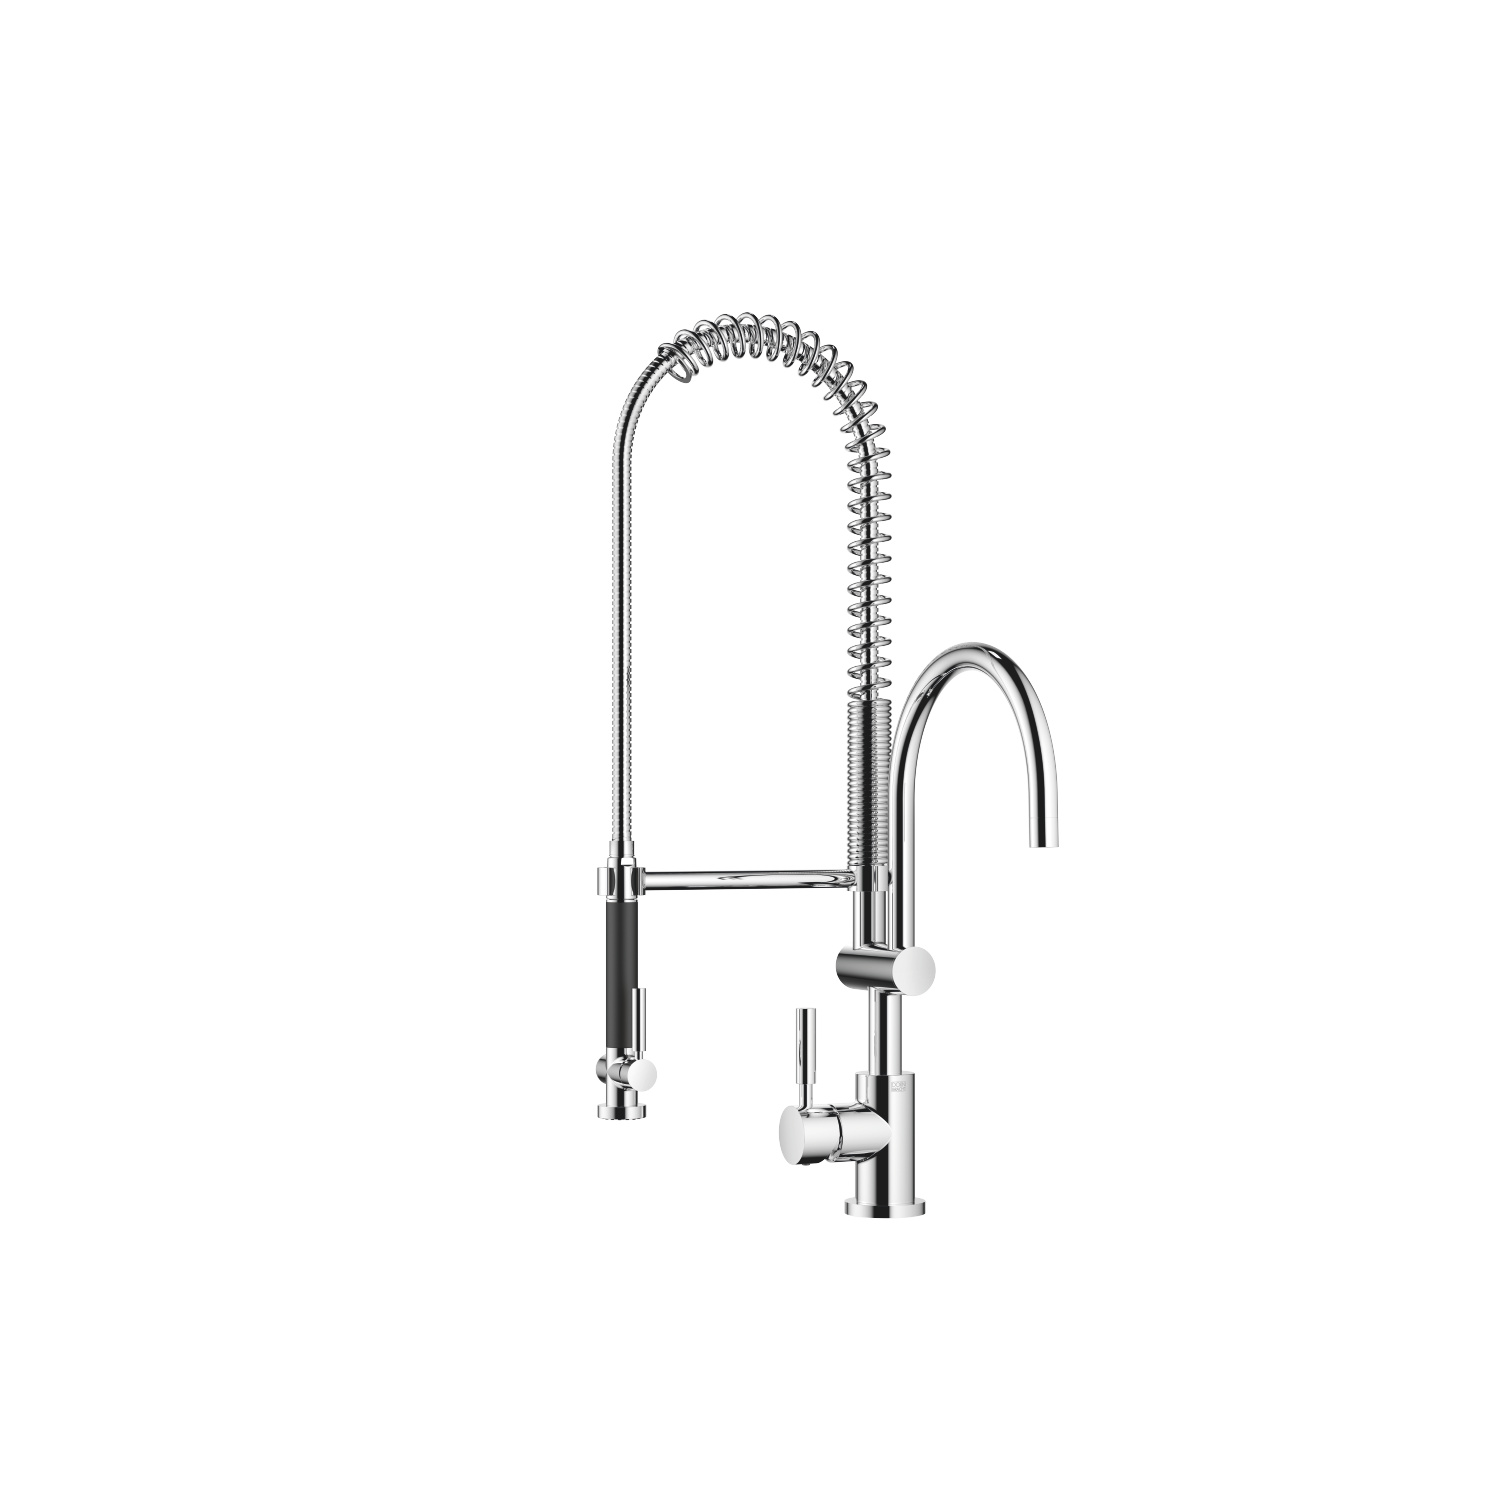 Profi single-lever mixer with lever on left - polished chrome